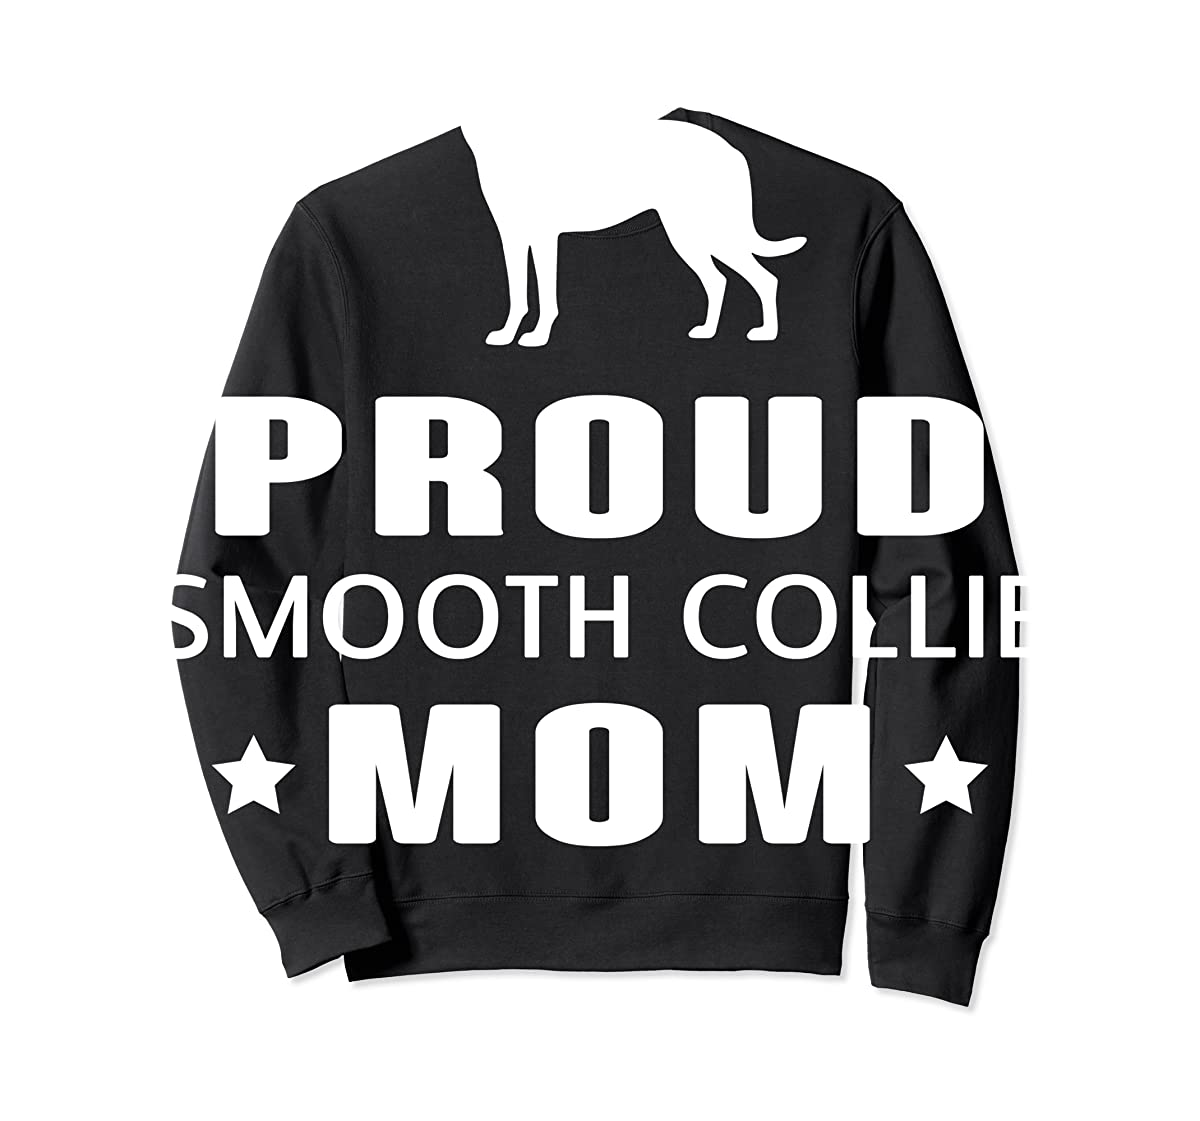 Smooth Collie Funny T-Shirts For Dog Lovers-Sweatshirt-Black